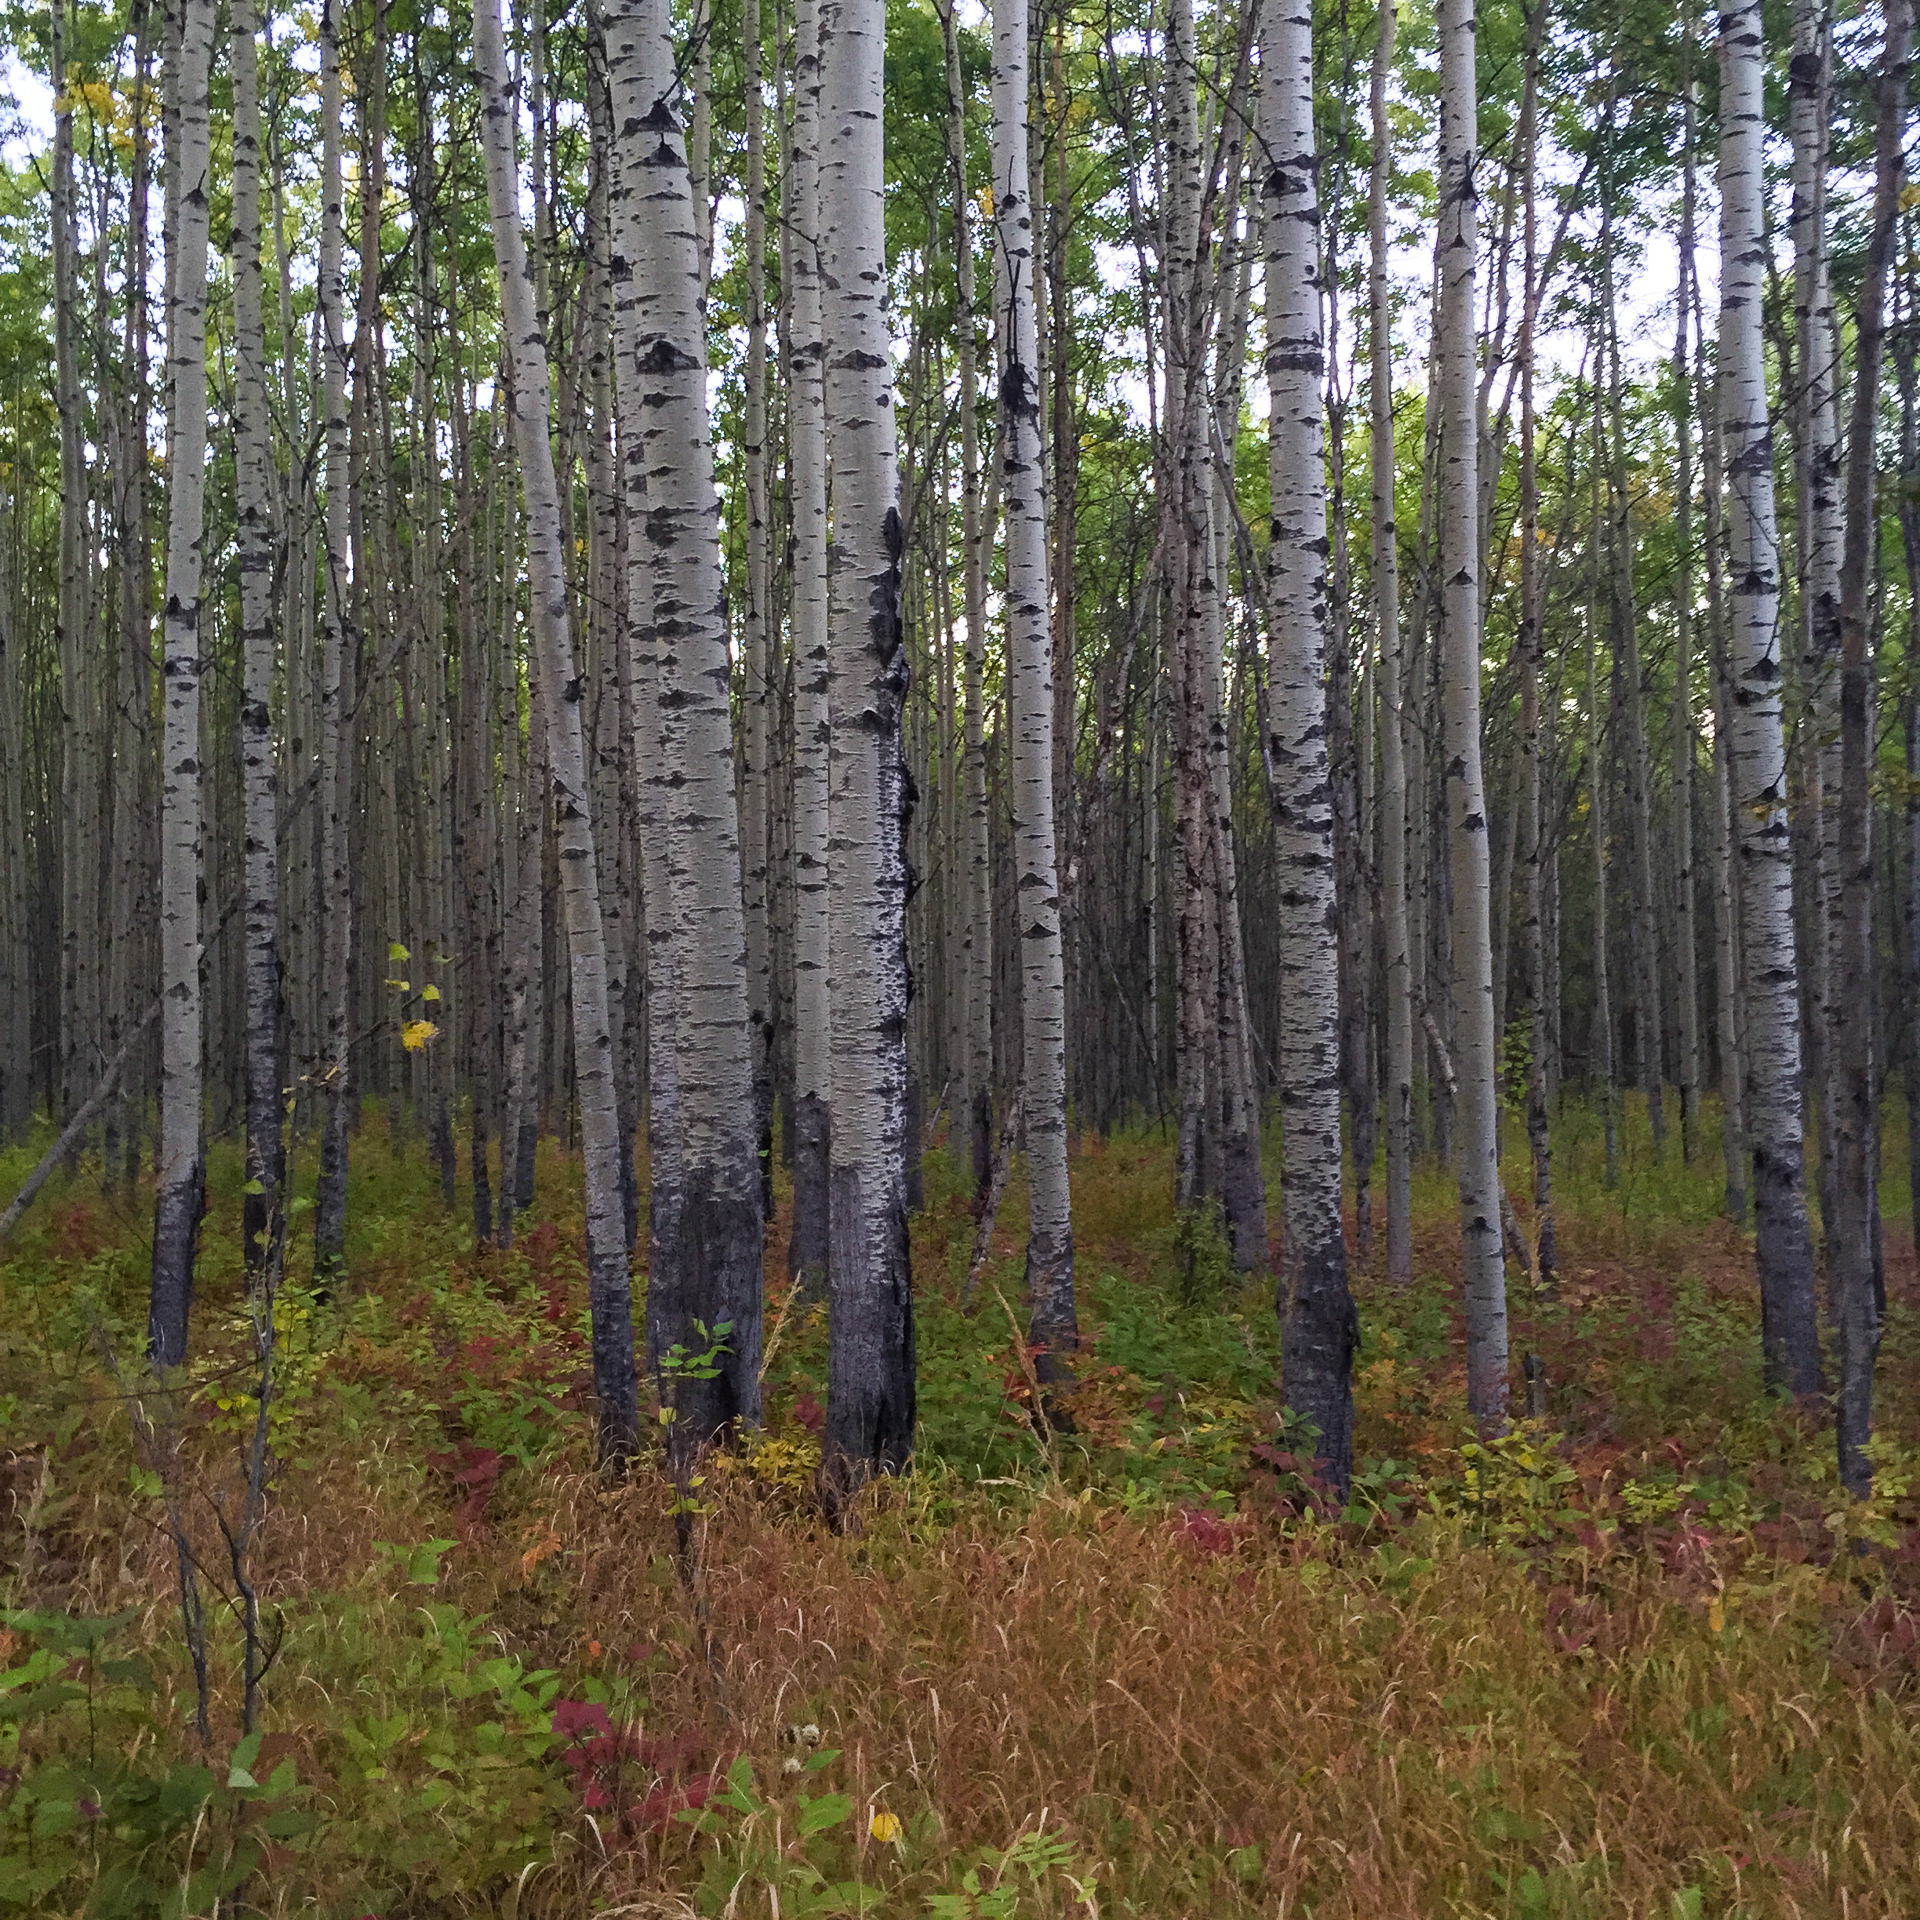 The forest around our campsite was also heading into fall colours.